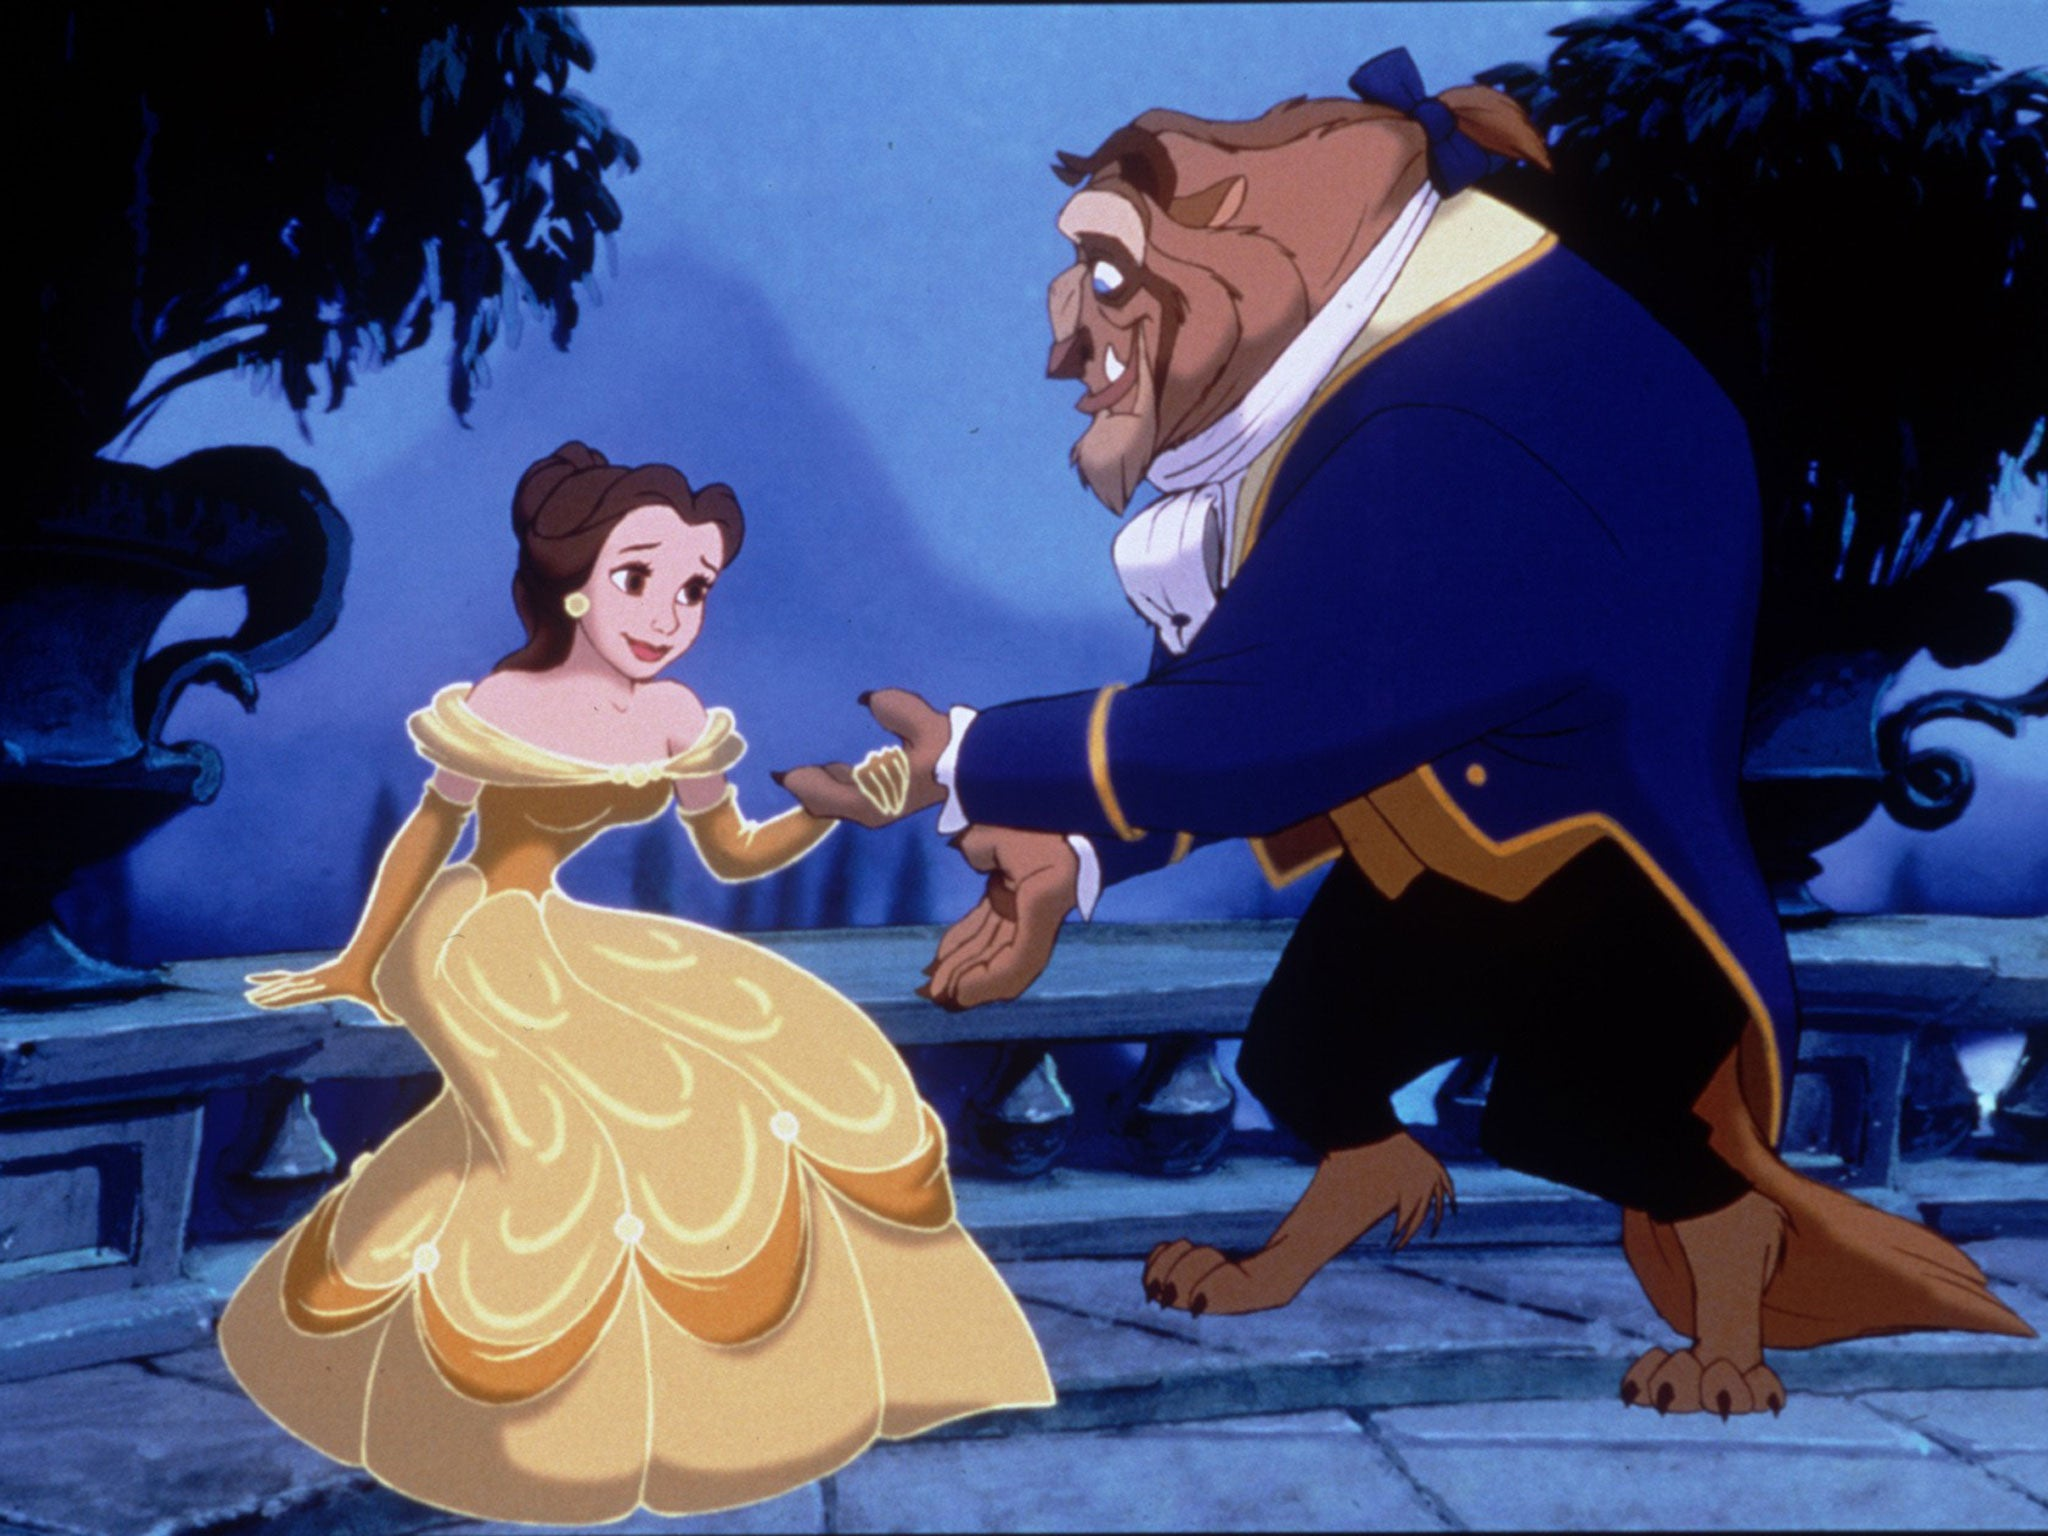 beauty and the beast analysis essay In this aesthetic realism essay, i comment on some of the reasons beauty and the beast has been loved throughout the centuries, because it deals with ethical questions that affect people every day.